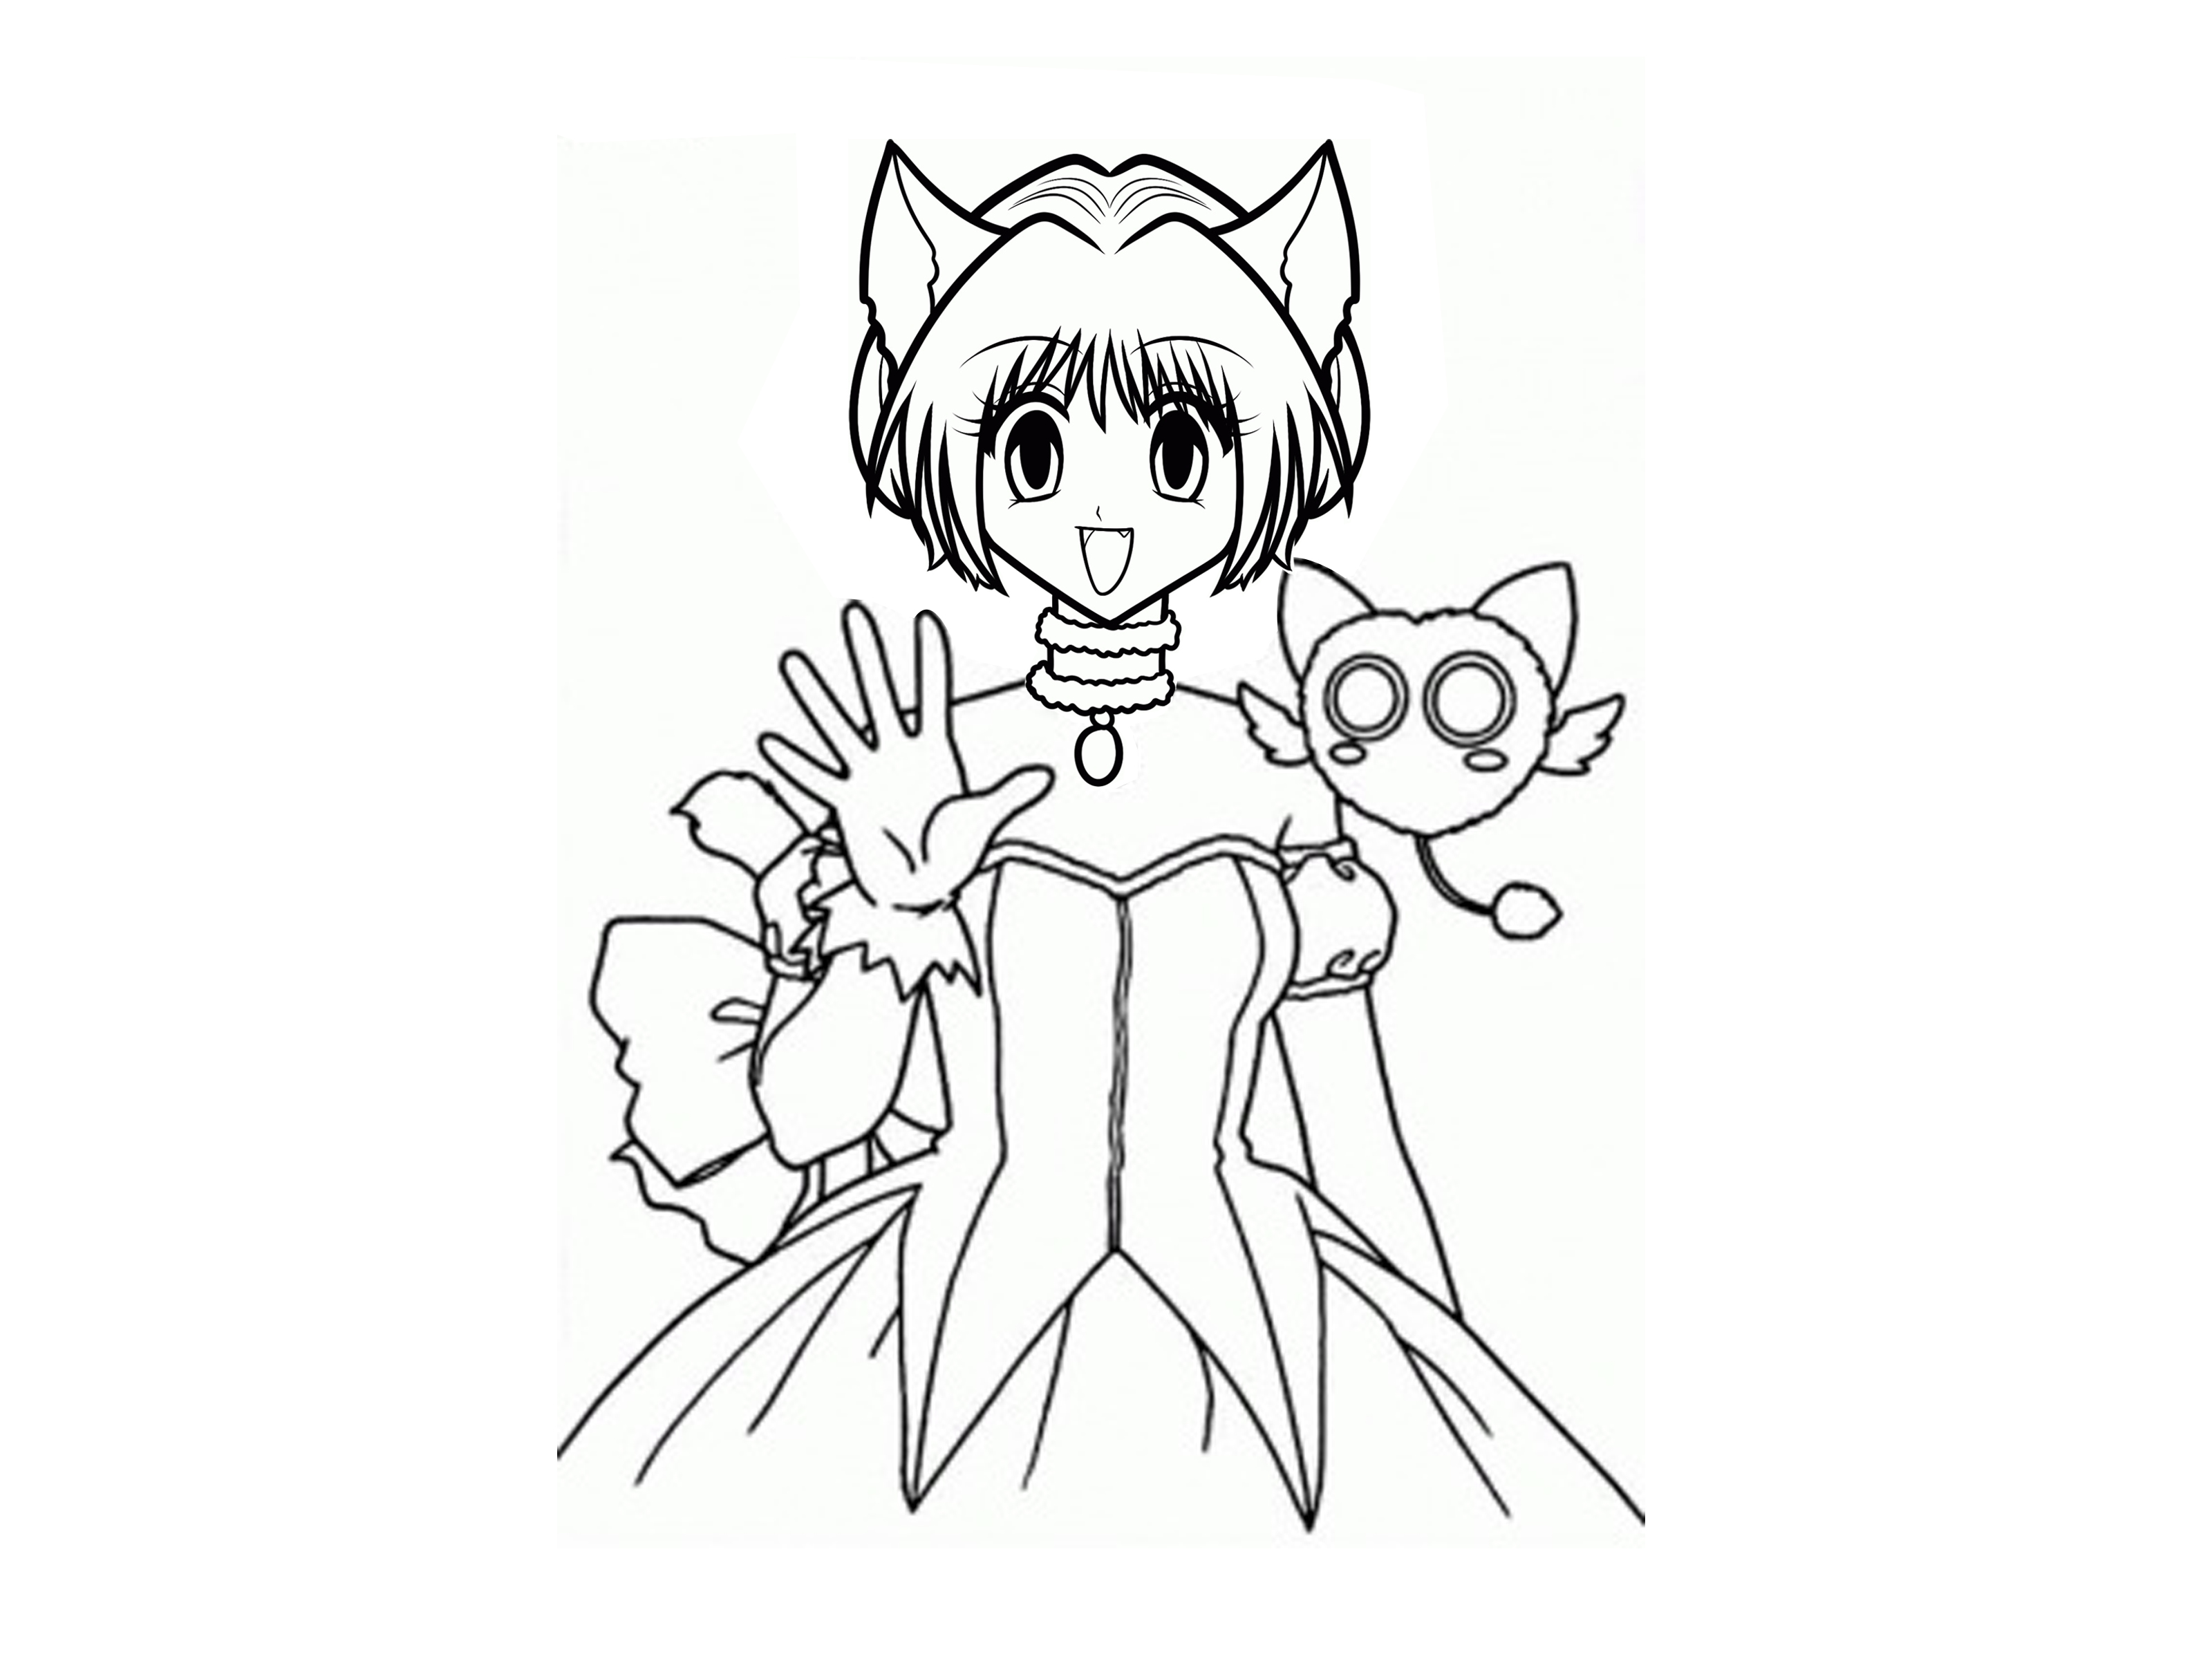 3200x2400 How To Draw Tokyo Mew Mew 11 Steps (With Pictures)